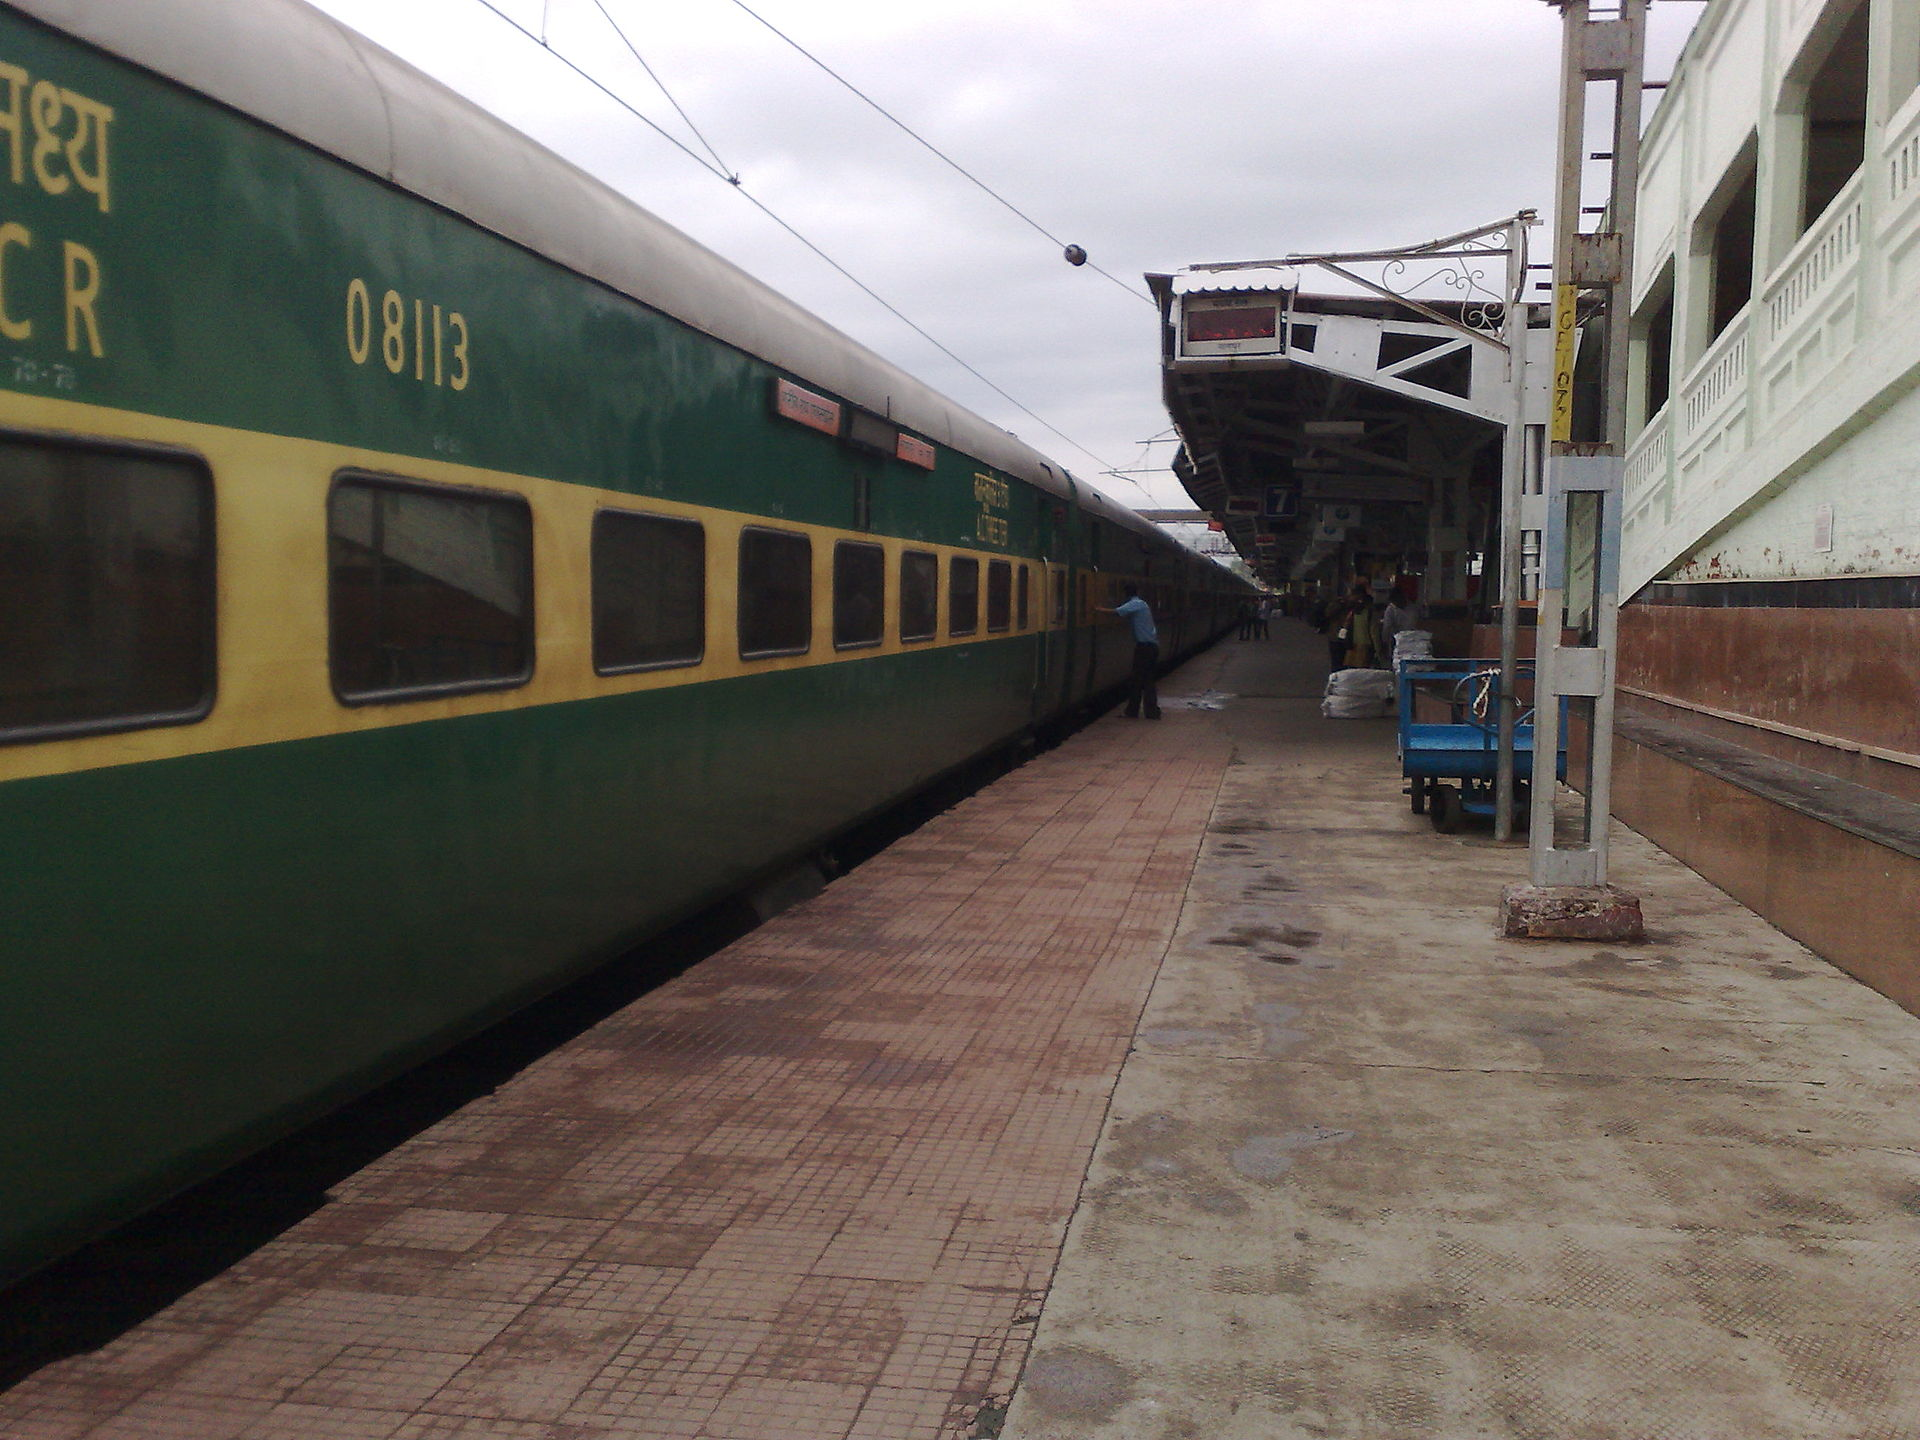 The Plight Of A Person with Disability In The Gareeb Rath Train